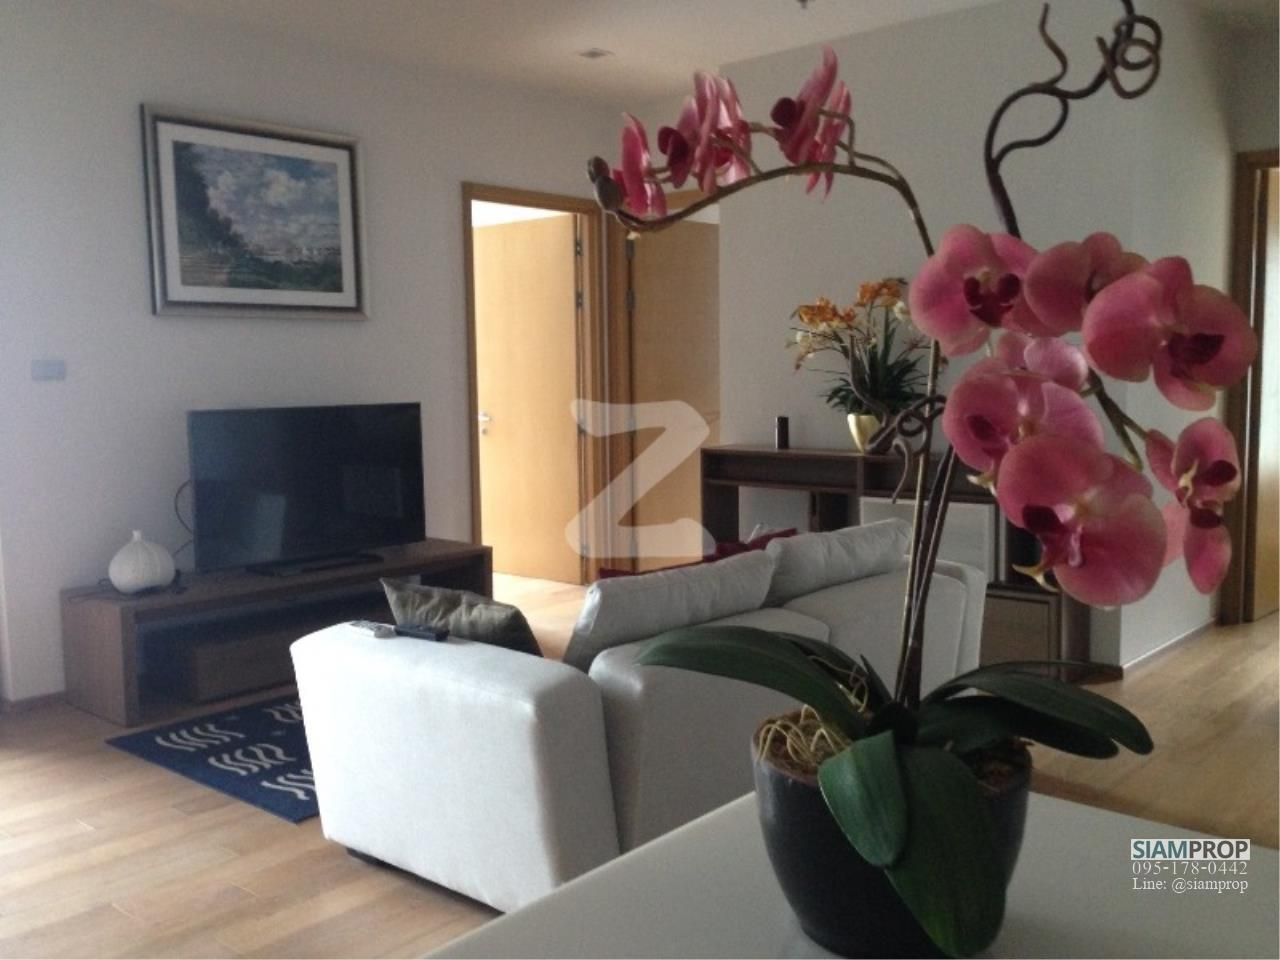 Siam Prop Agency's Hyde Sukhumvit 13 Condo for Rent, 3 bedrooms Rent 80,000 Baht/month 1